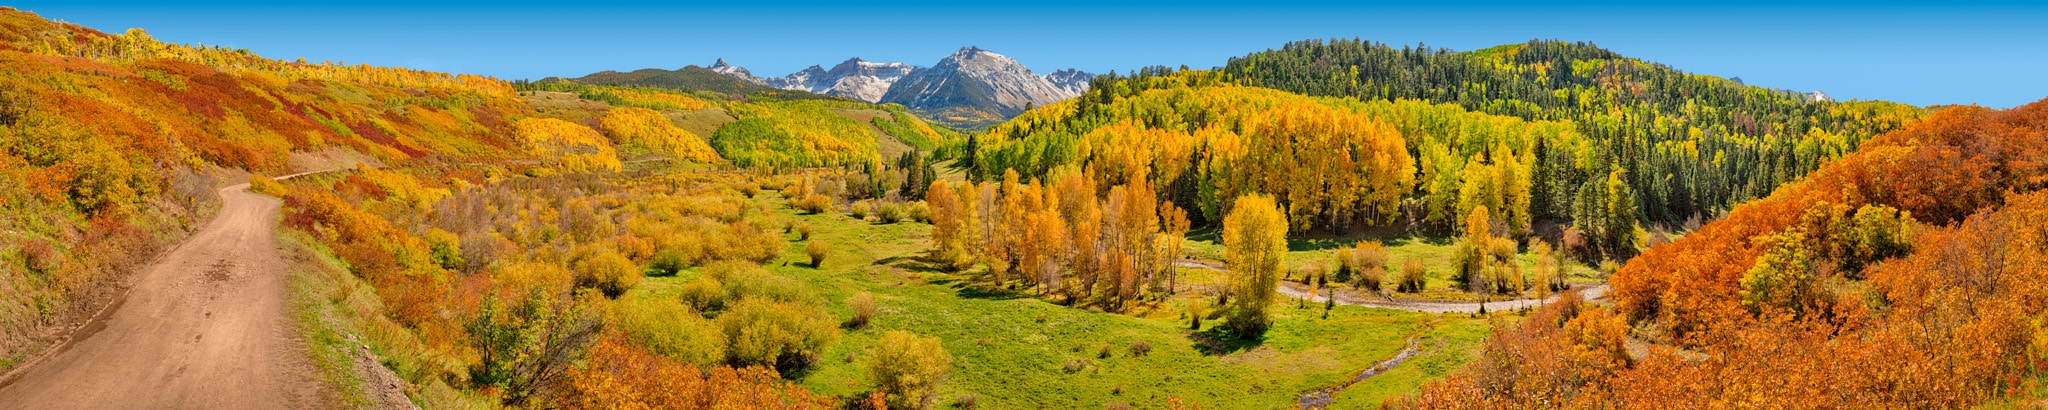 A panoramic view along CR 7, looking toward the Snellels Wilderness showing the autumn colors of aspen, gambel oak, and cottonwoods